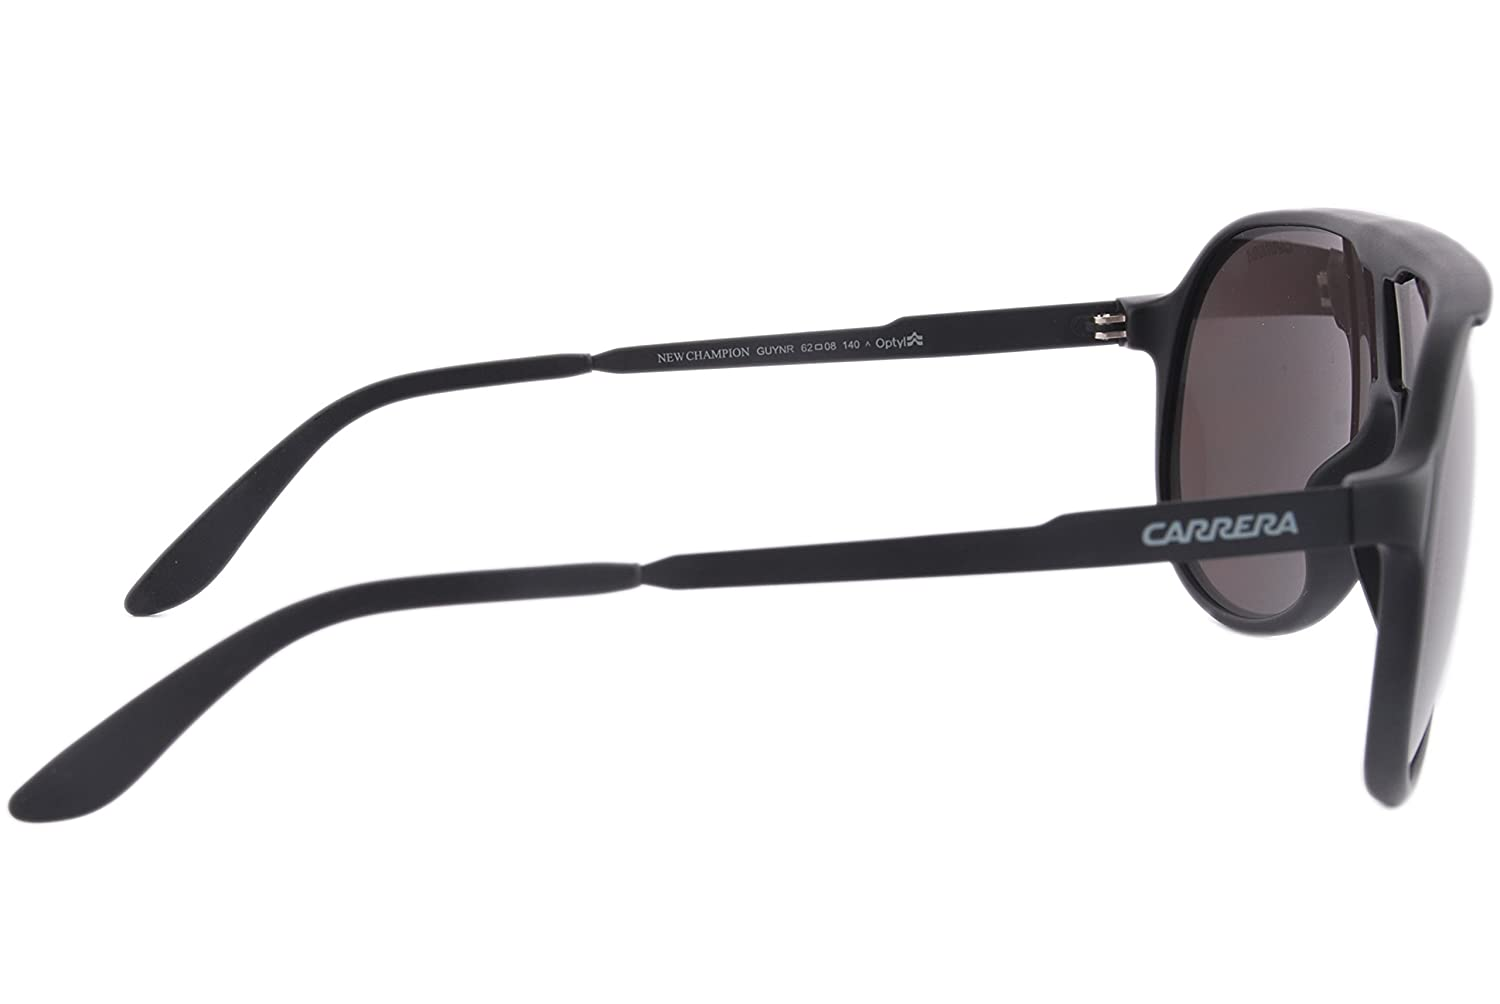 af246dcd3671 Carrera Aviator Sunglasses (Matte Black) (NEW CHAMPION-GUYNR): Amazon.in:  Clothing & Accessories